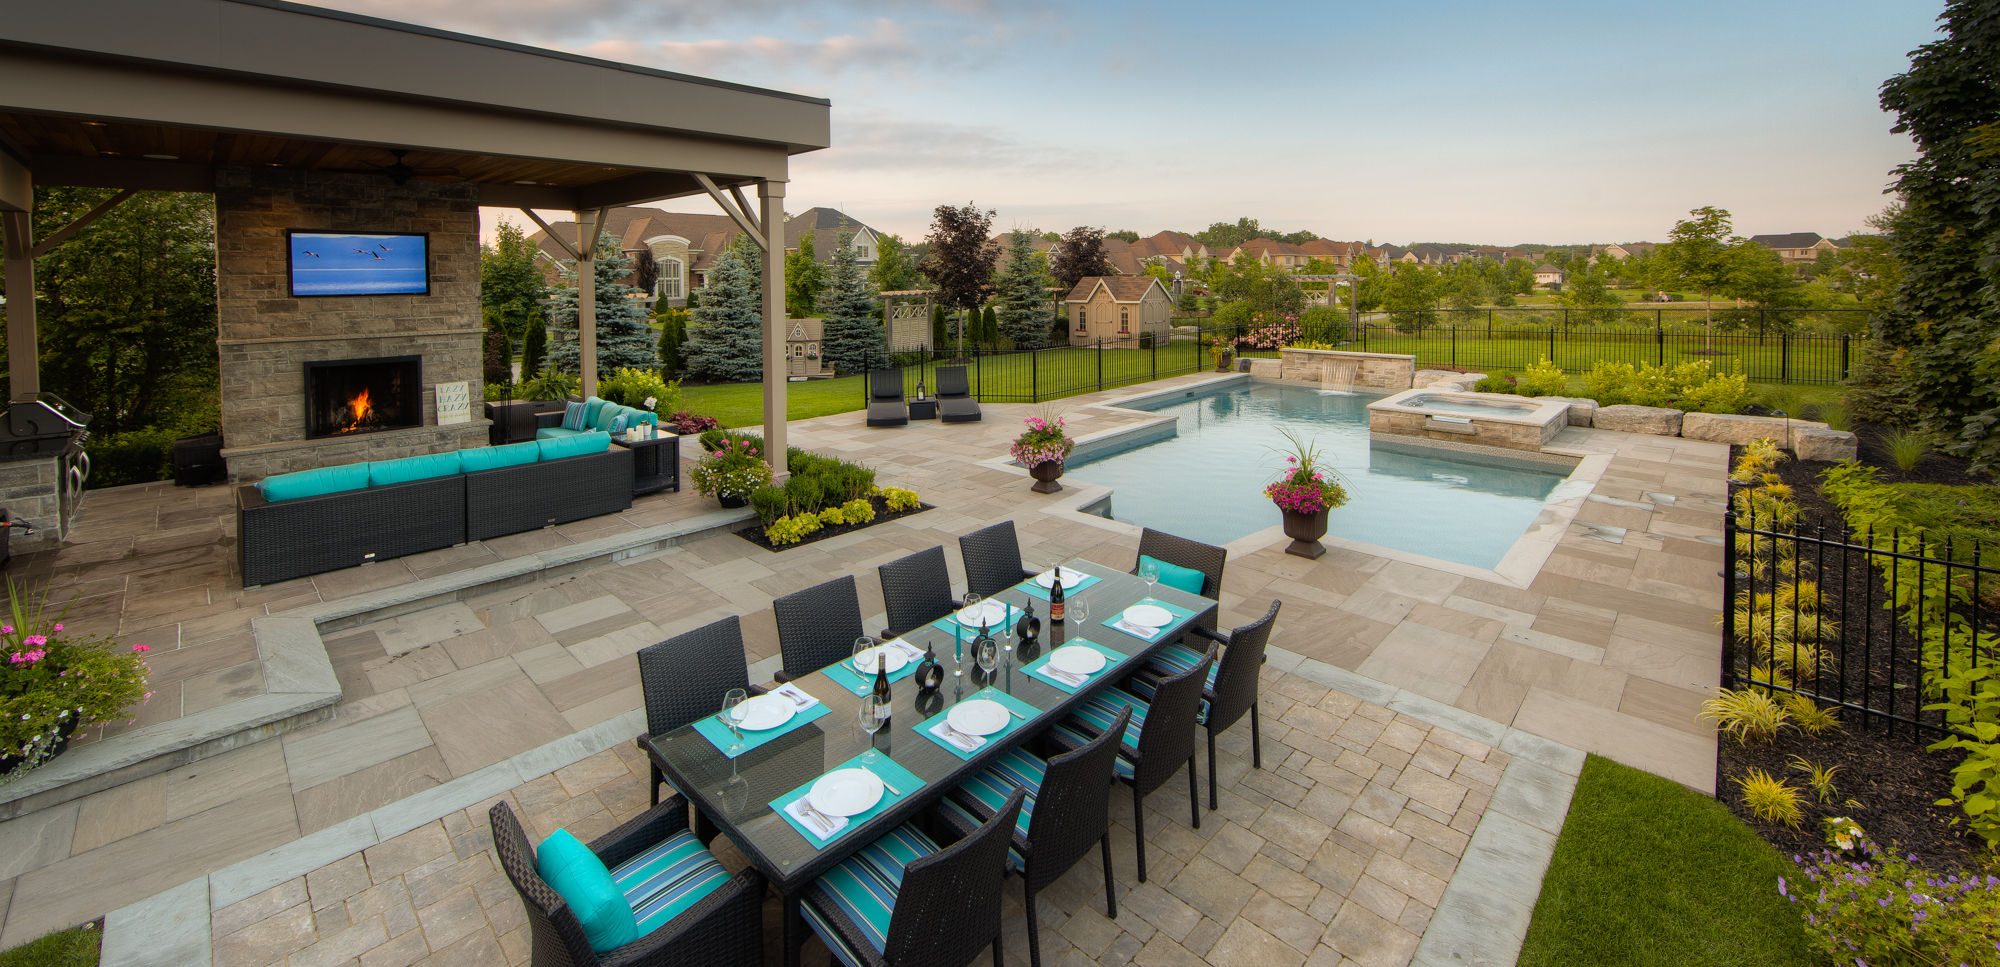 A residential swimming pool and patio with outdoor furniture